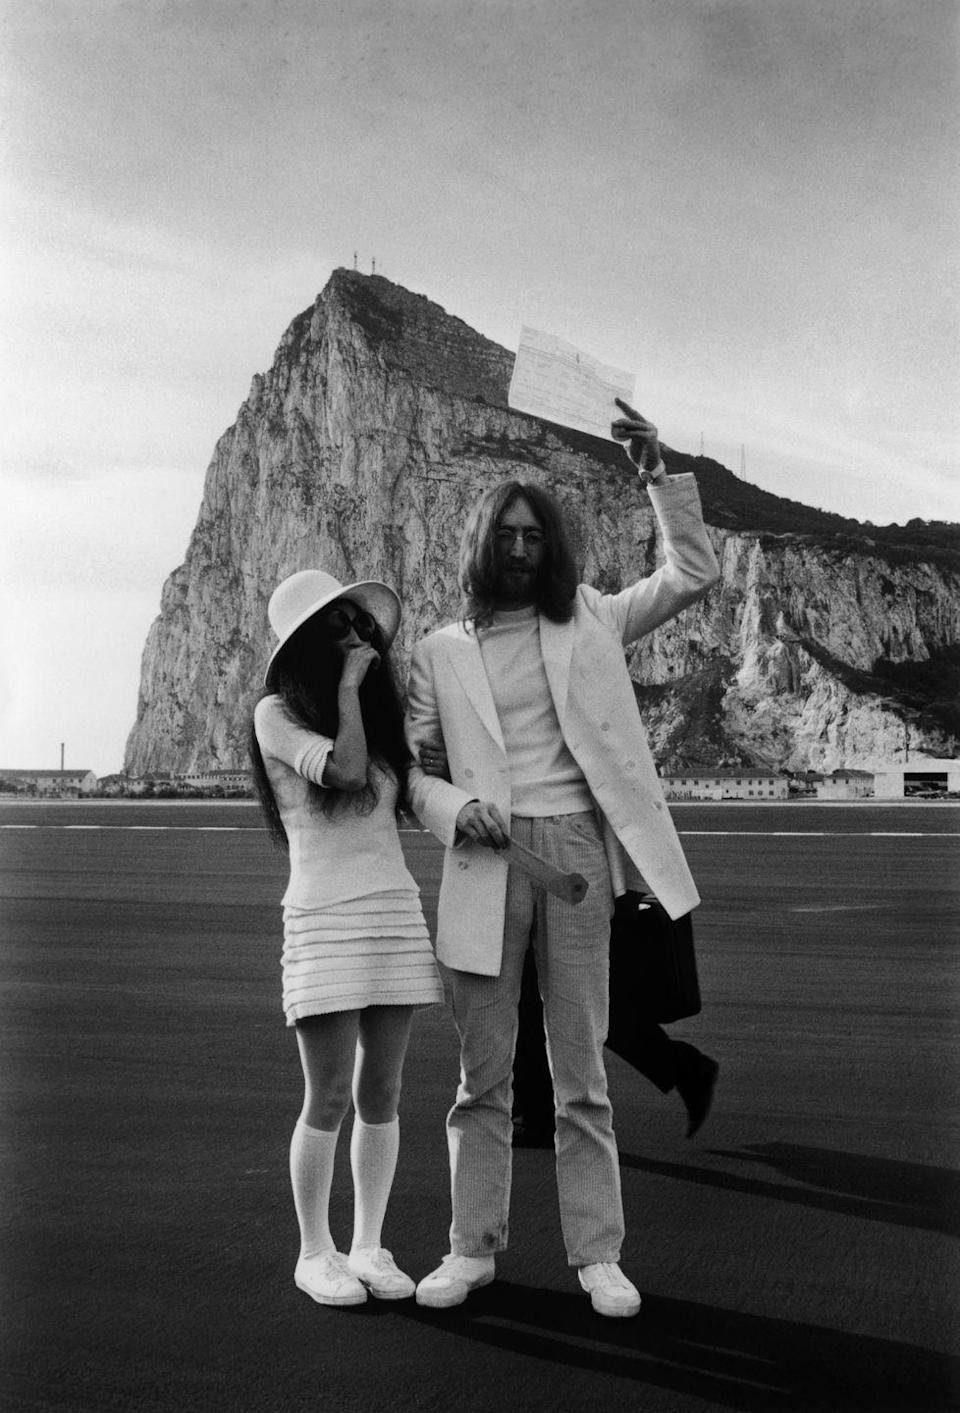 "<p>Being the unconventional couple that they were, Yoko Ono and John Lennon chose to wear untraditional garb to their nuptials. Ono rocked several of the <a href=""https://www.goodhousekeeping.com/beauty/g2695/1960s-hair-makeup-trends-now/"" rel=""nofollow noopener"" target=""_blank"" data-ylk=""slk:decade's most iconic trends"" class=""link rapid-noclick-resp"">decade's most iconic trends</a>: the mini skirt, a felt hat, and knee-highs.</p>"